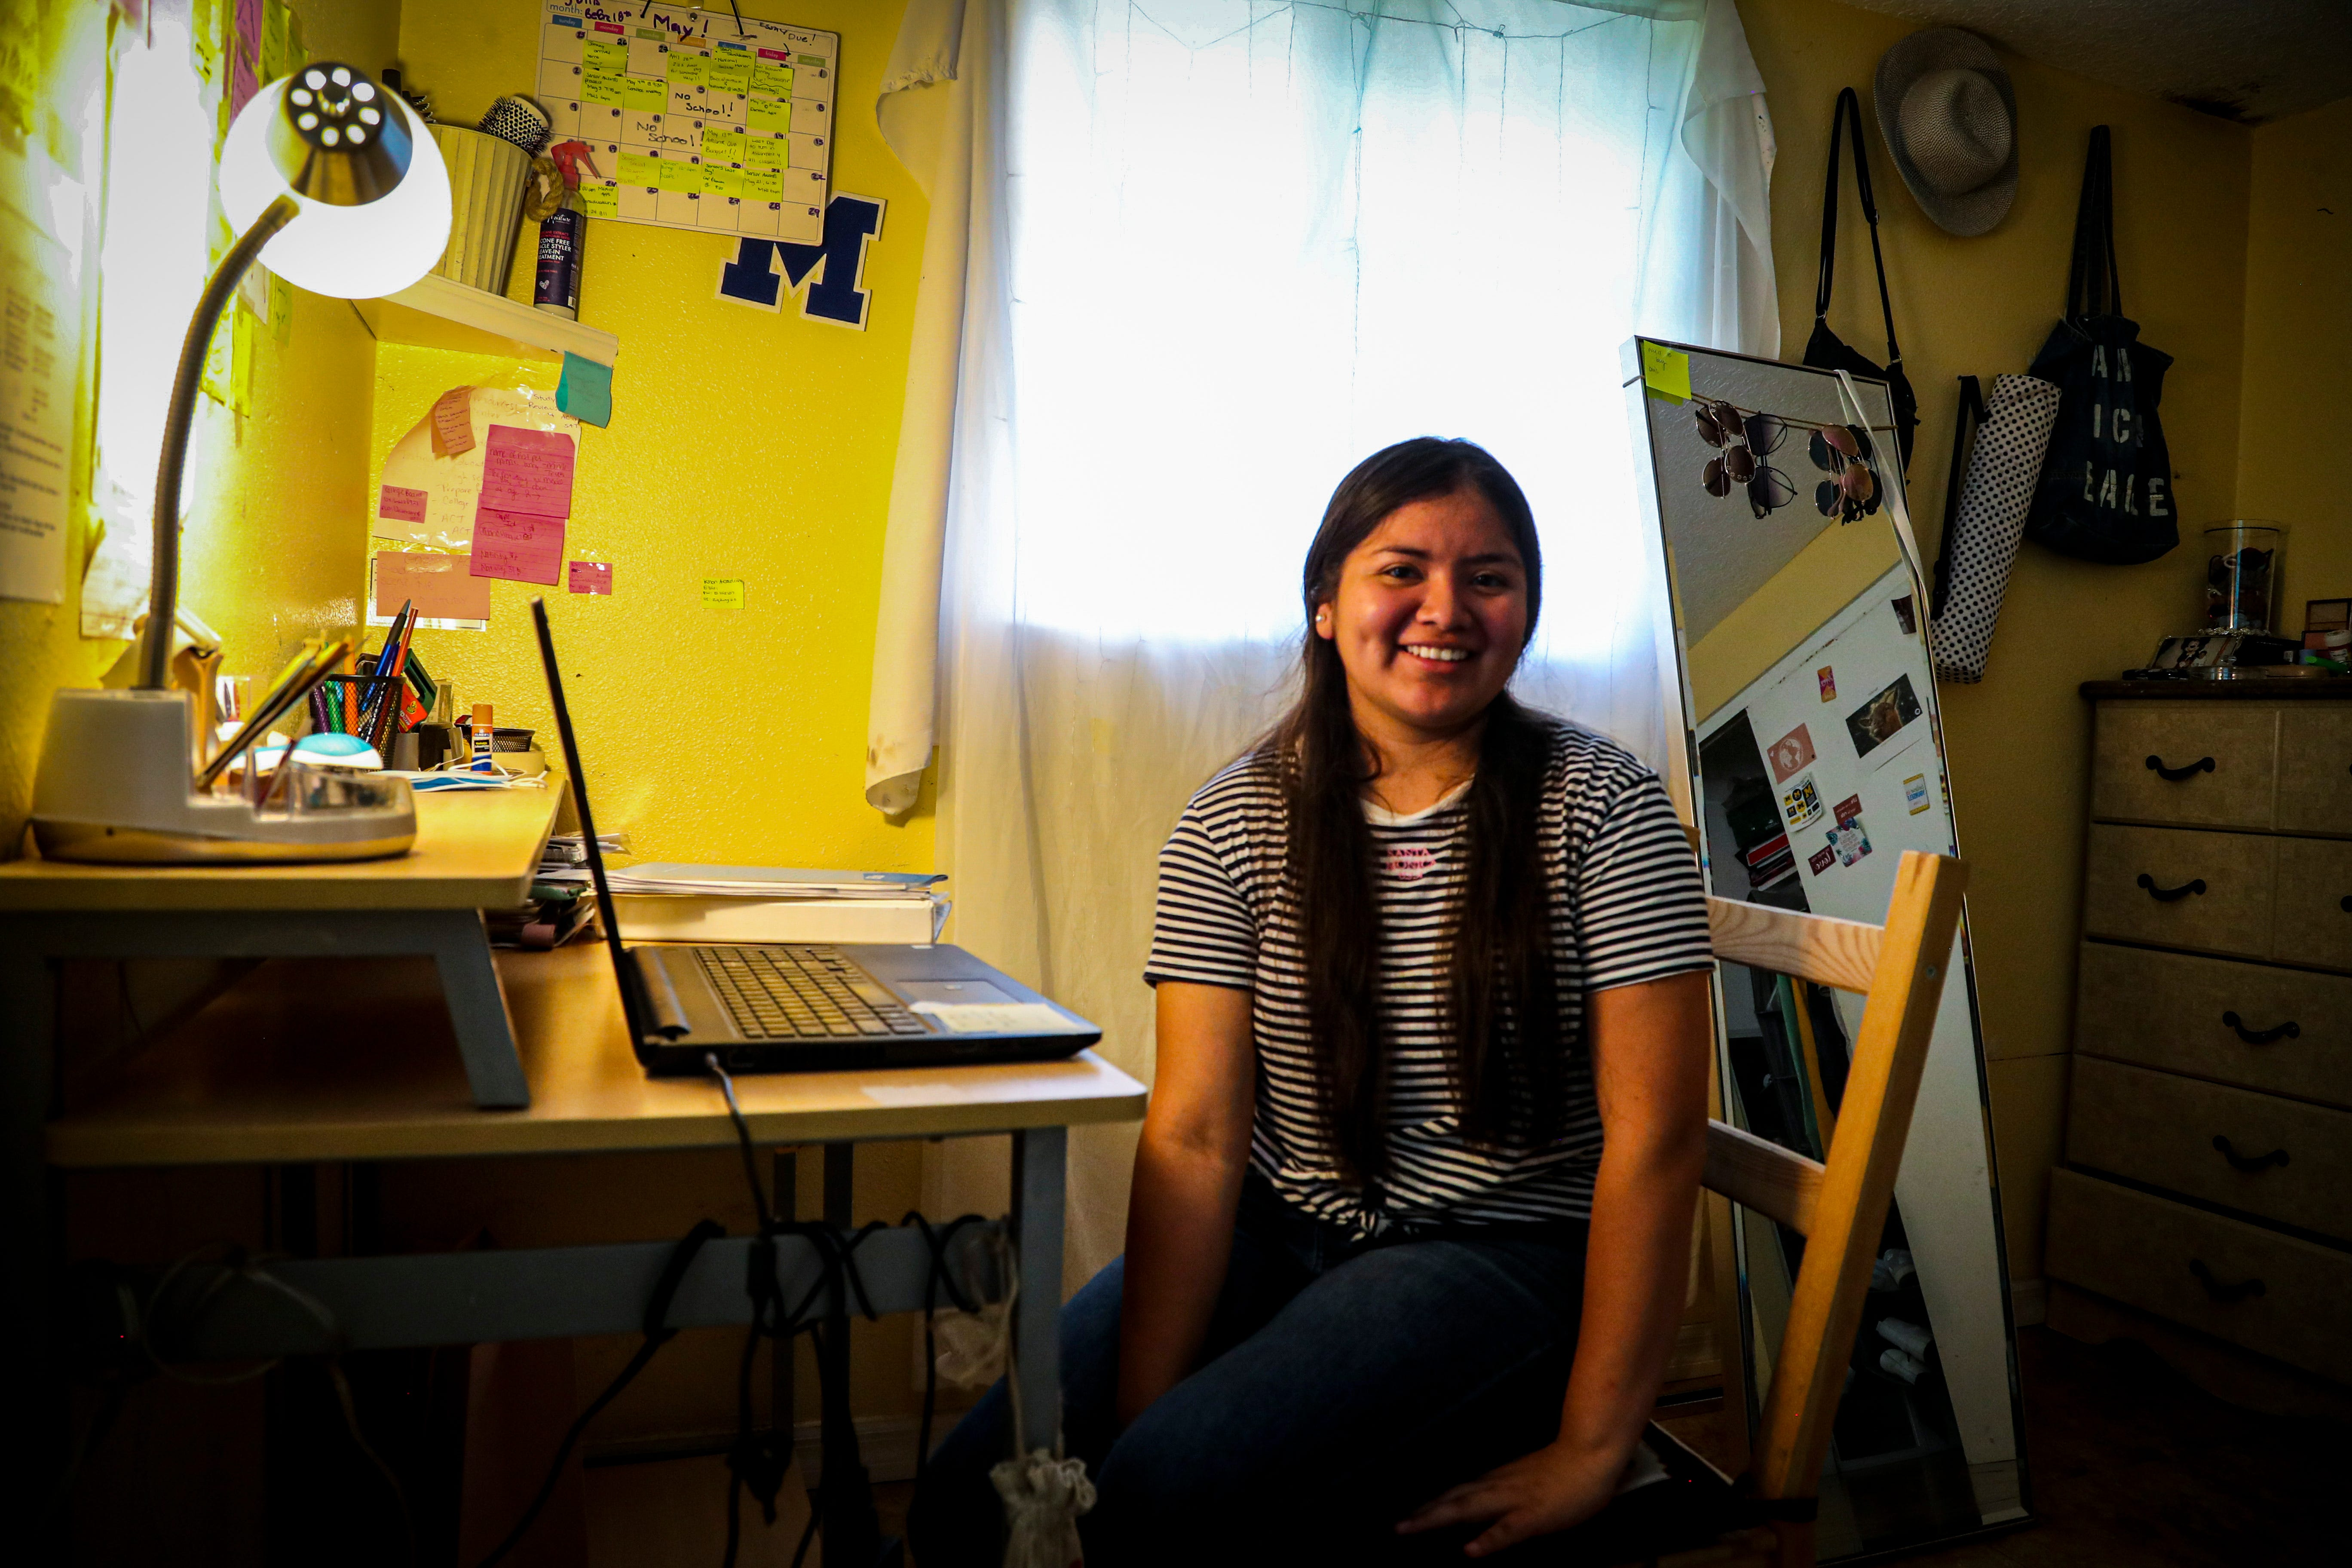 Luz Vazquez Hernandez in her room in Mulberry, Florida. This is where she spent most of her time working on homework during the pandemic. She was taking three AP classes during virtual school, which she balanced with working during the school day in the fields. This spring she graduated with a 3.9 GPA.